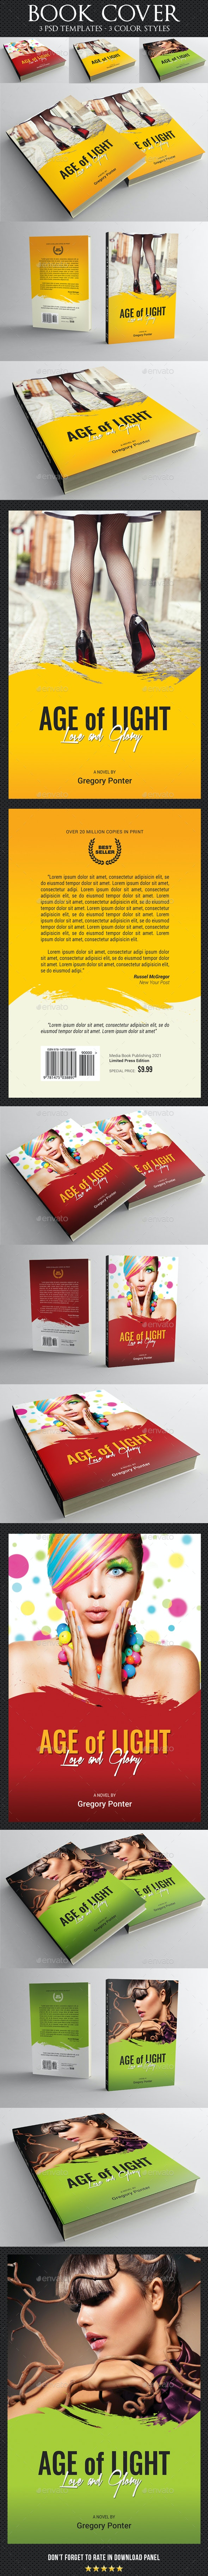 Book Cover Template 73 - Miscellaneous Print Templates